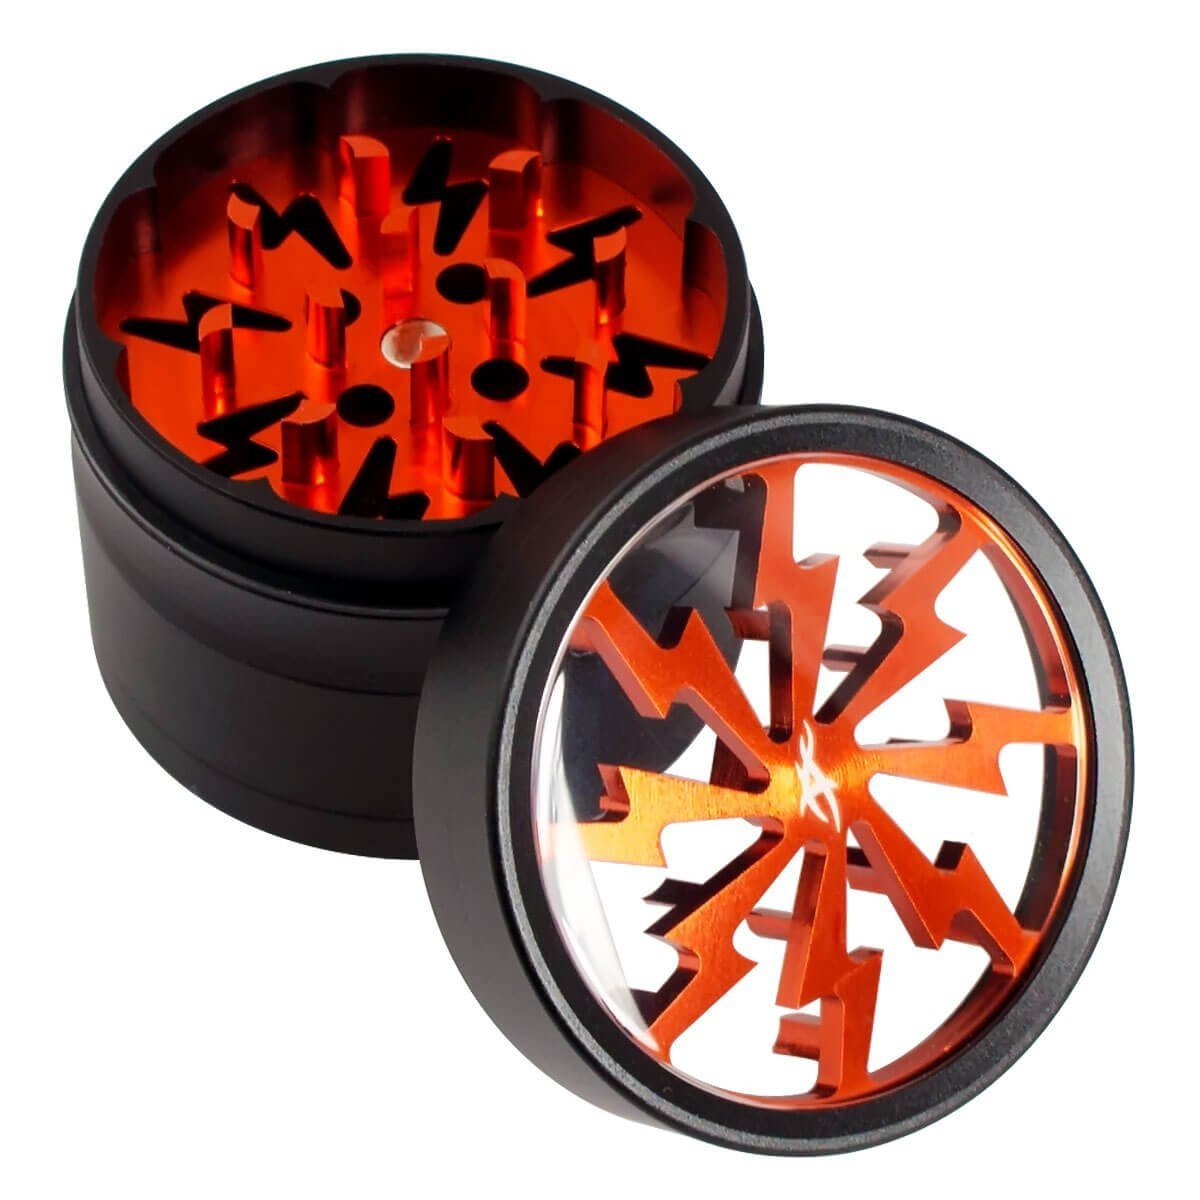 Thorinder 62mm Sift Herb Grinder - Vapefiend UK